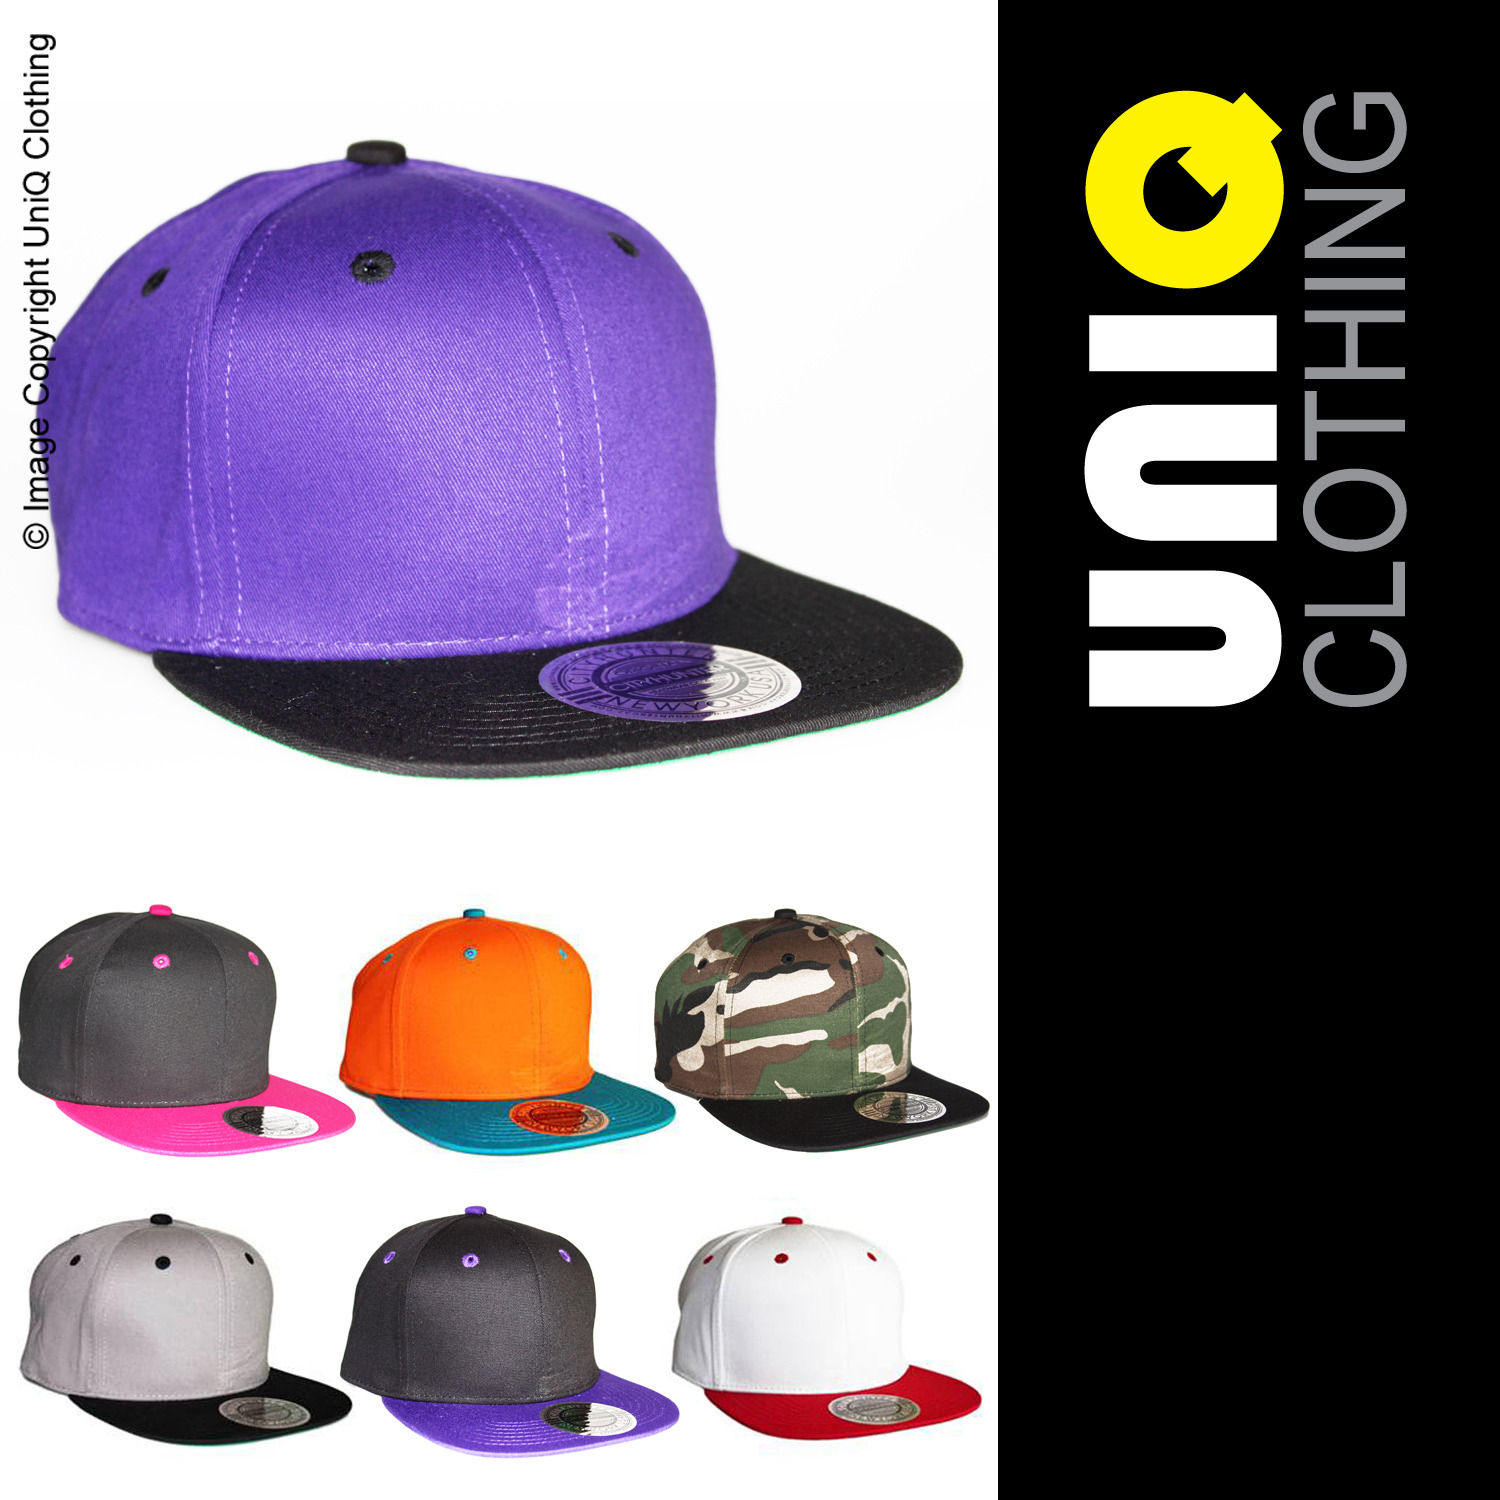 UNIQ-UK Mens/Womens CAP/HAT Adjustable Size/Snap Back/Baseball/Retro L5 Enlarged Preview